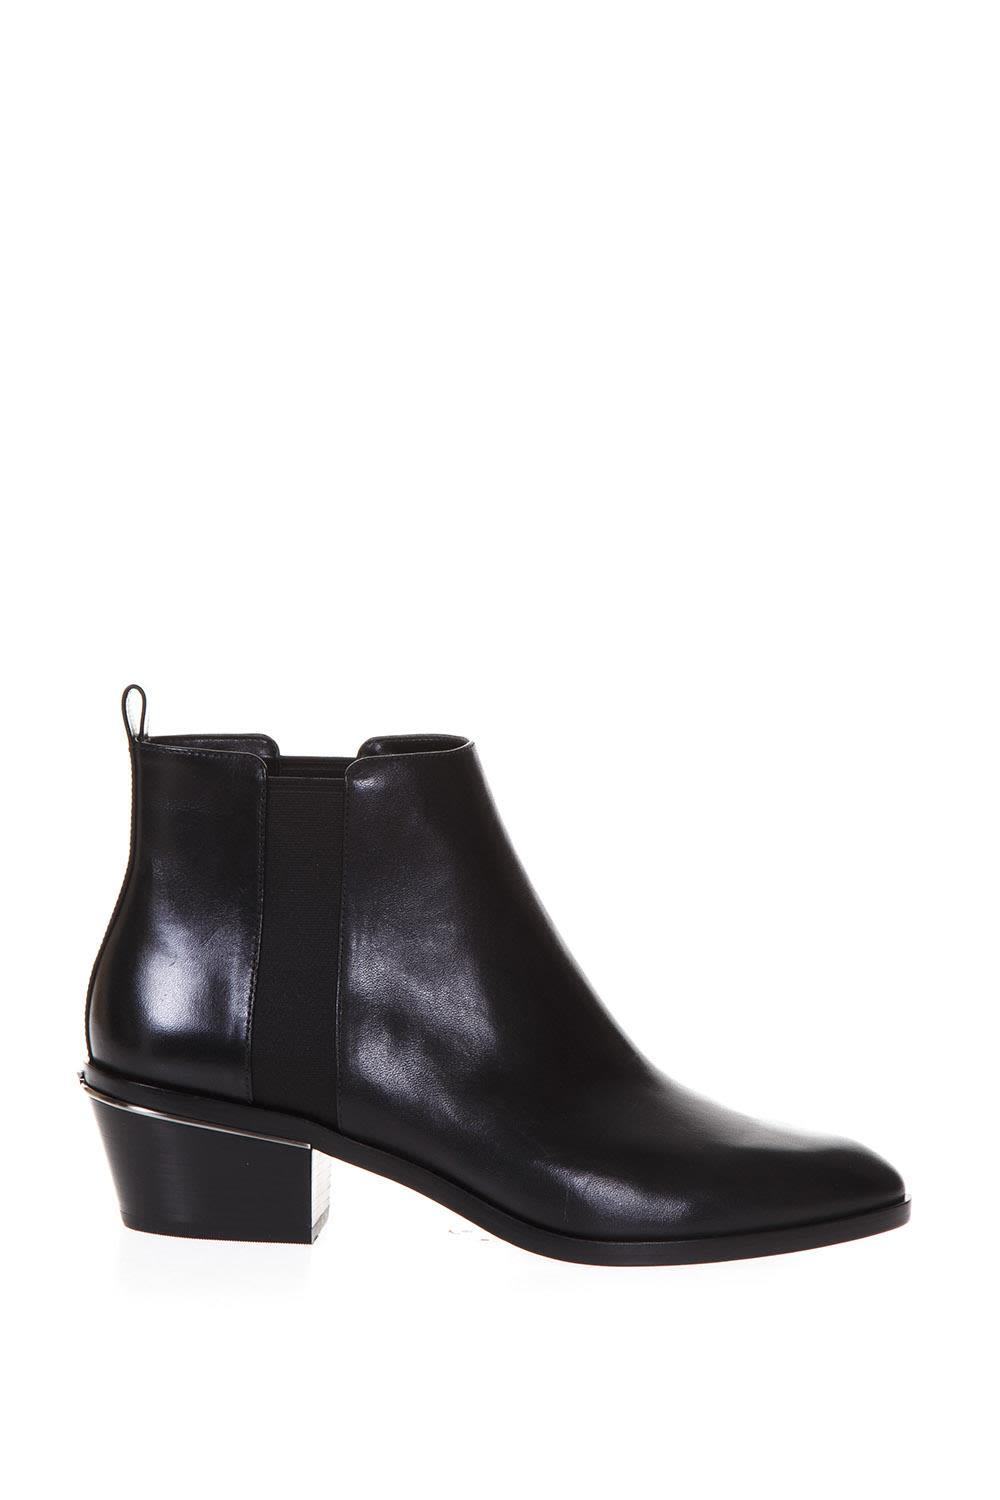 Michael Michael Kors Pointed Toe Ankle Boots In Black